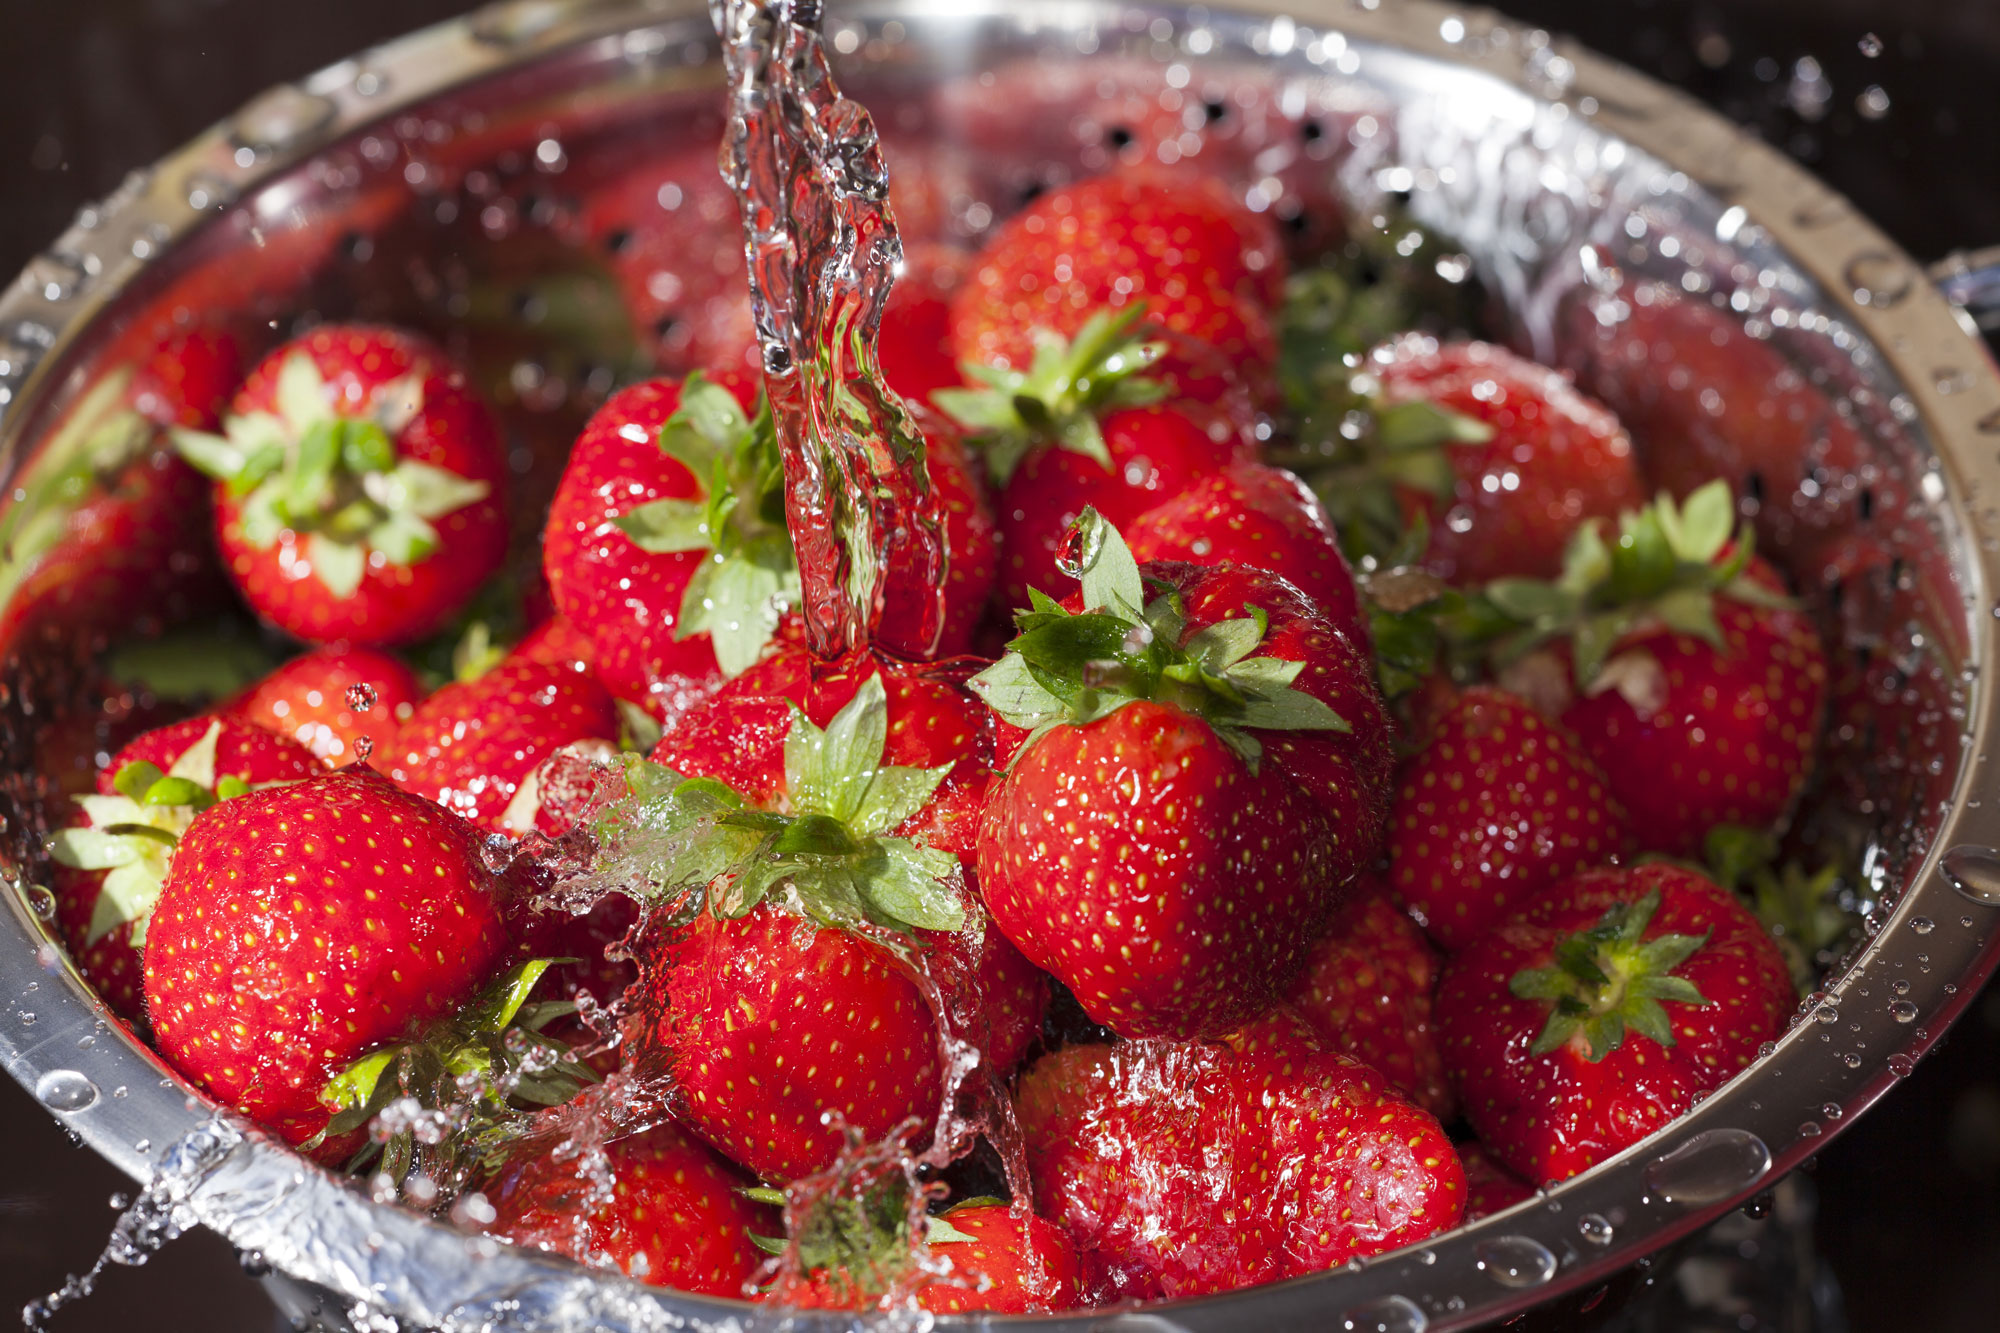 Fresh strawberries are seen in a file photo. (Shutterstock via CNN)